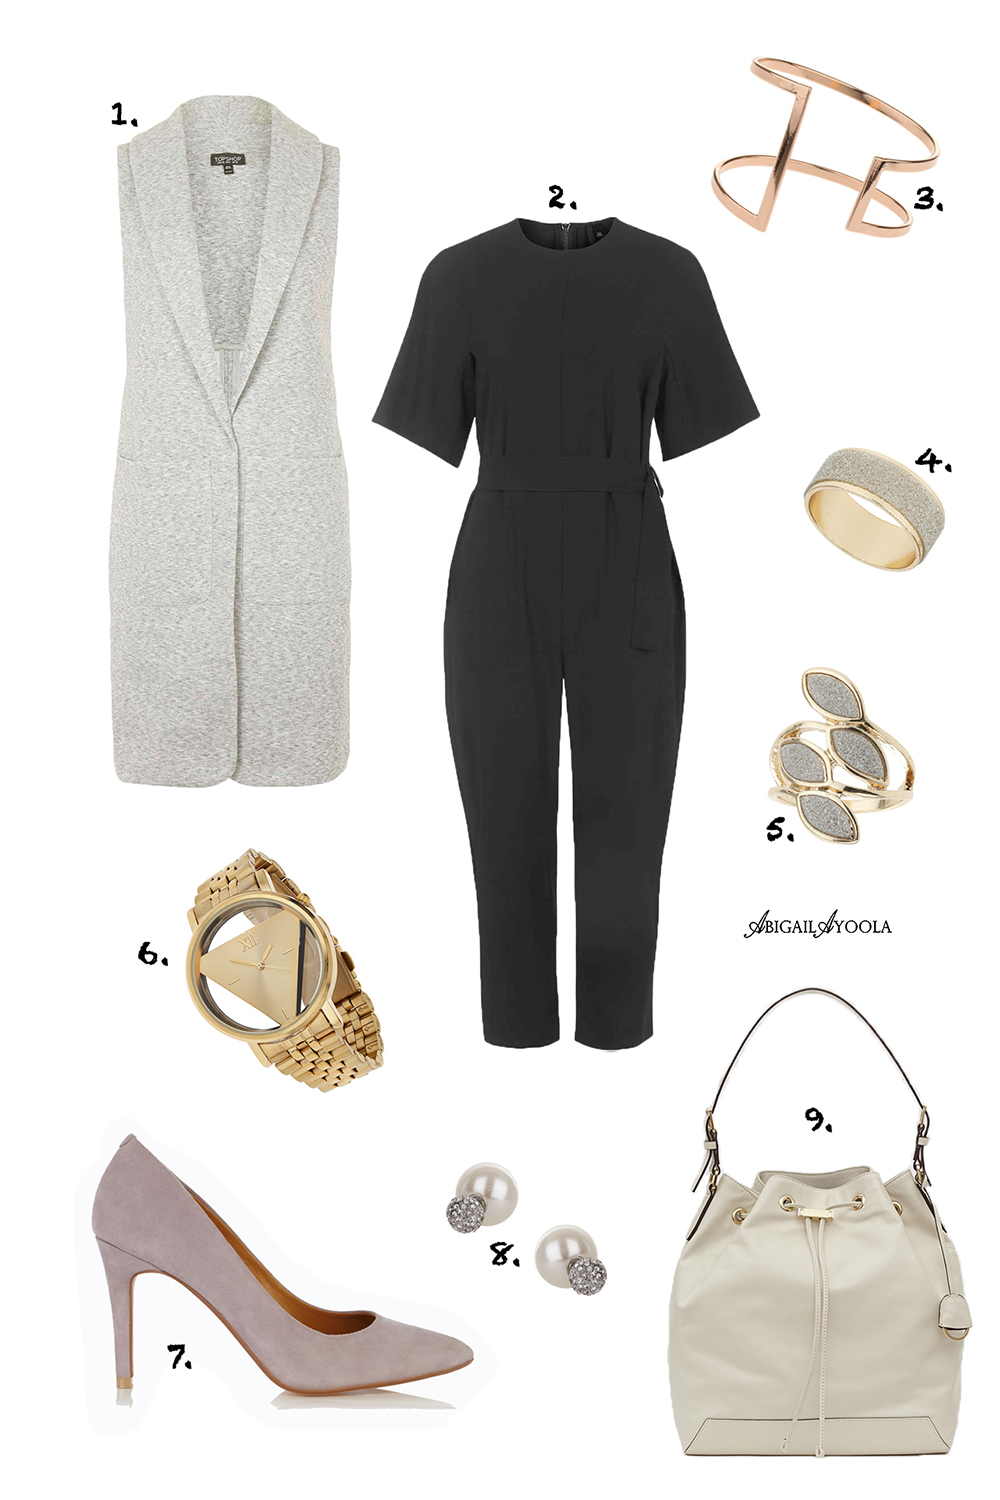 A JUMPSUIT WORK OUTFIT